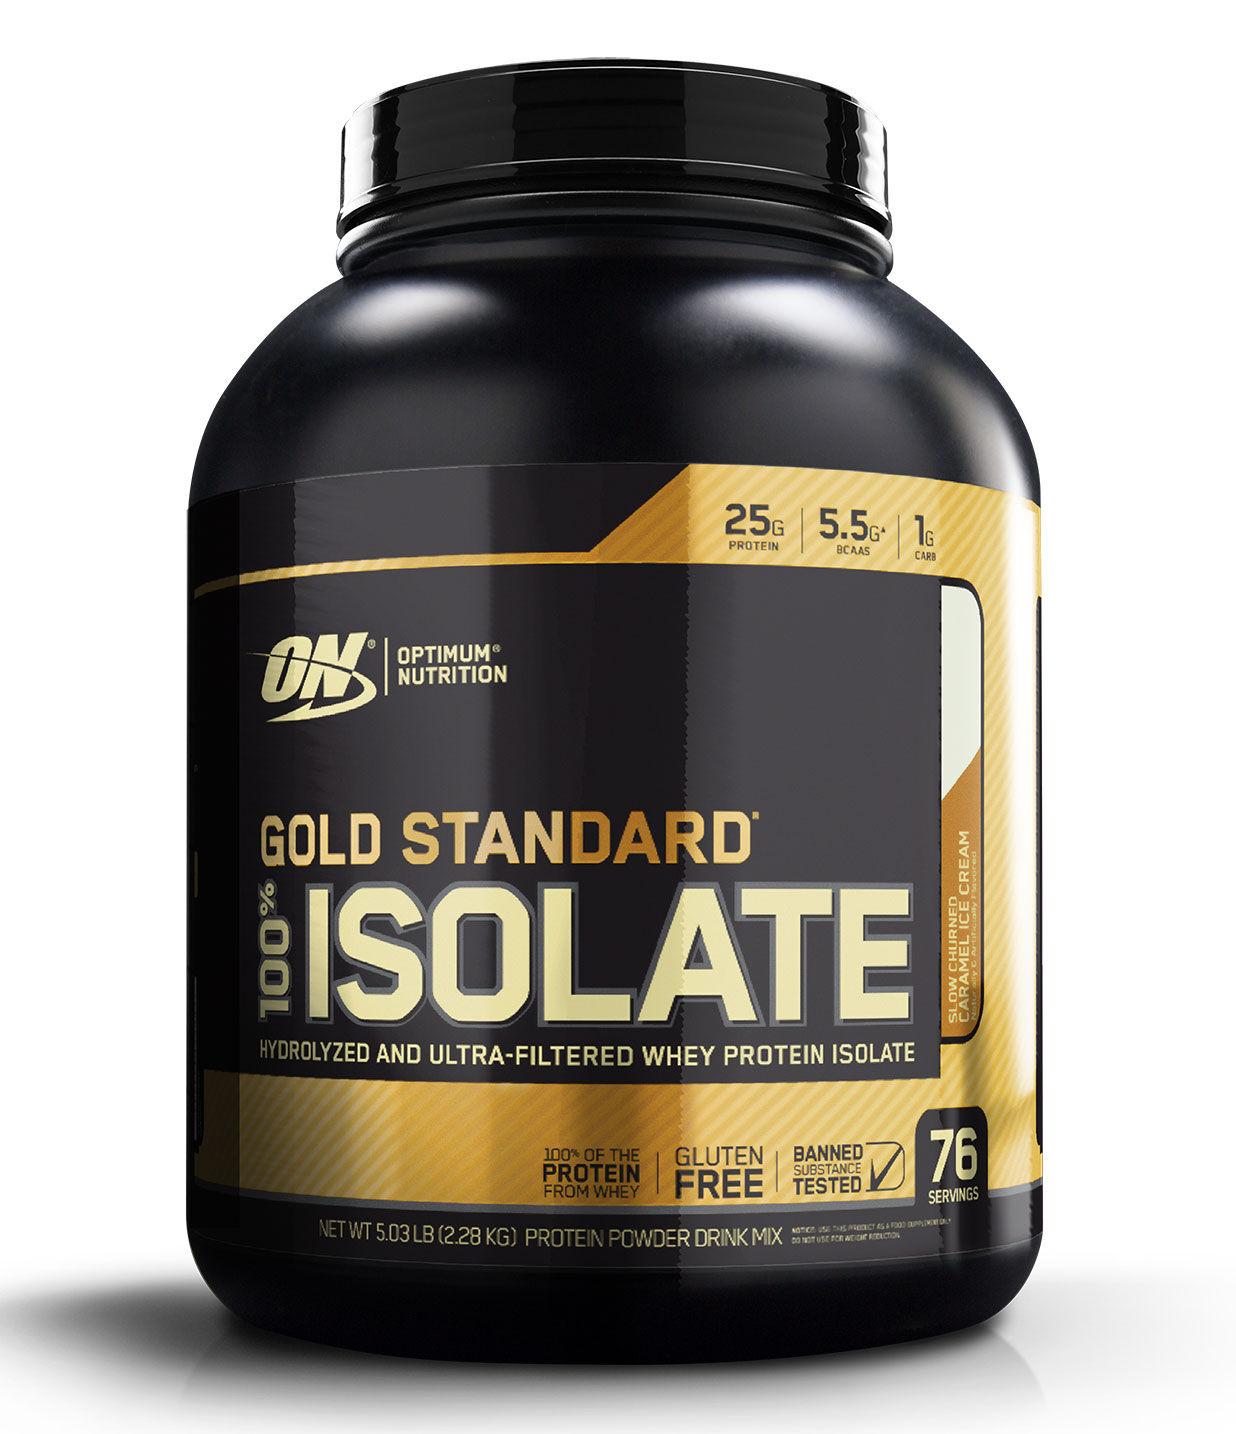 100% Gold Standard Isolate Optimum Nutrition (2360 g)